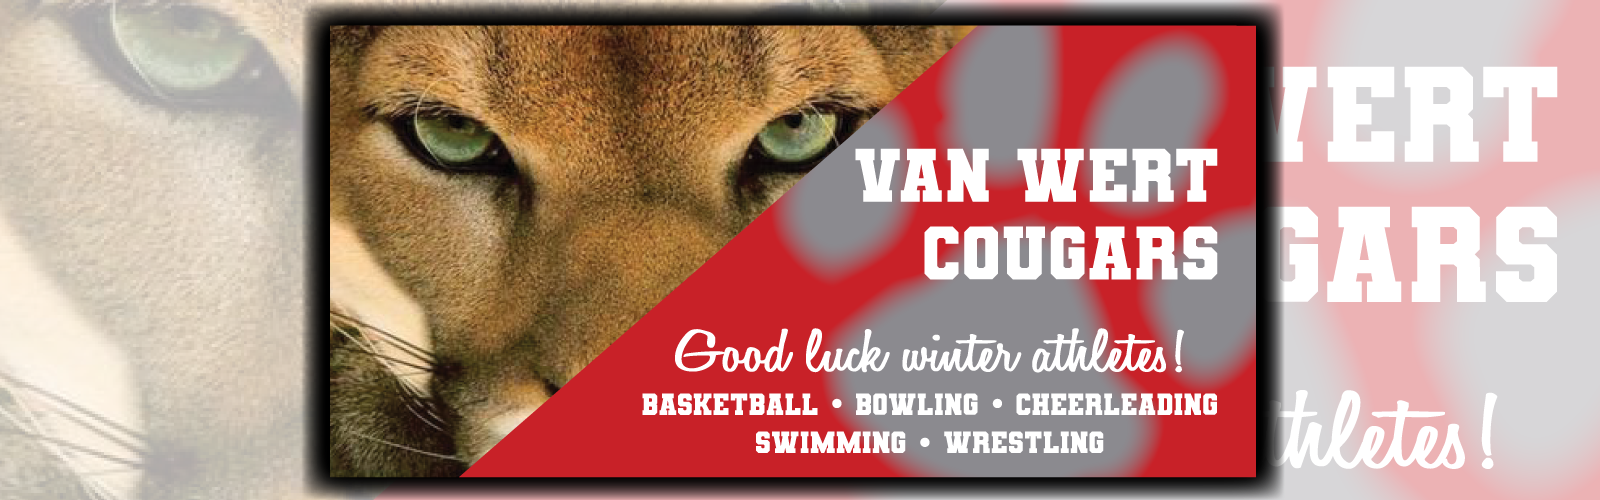 Good luck winter athletes banner